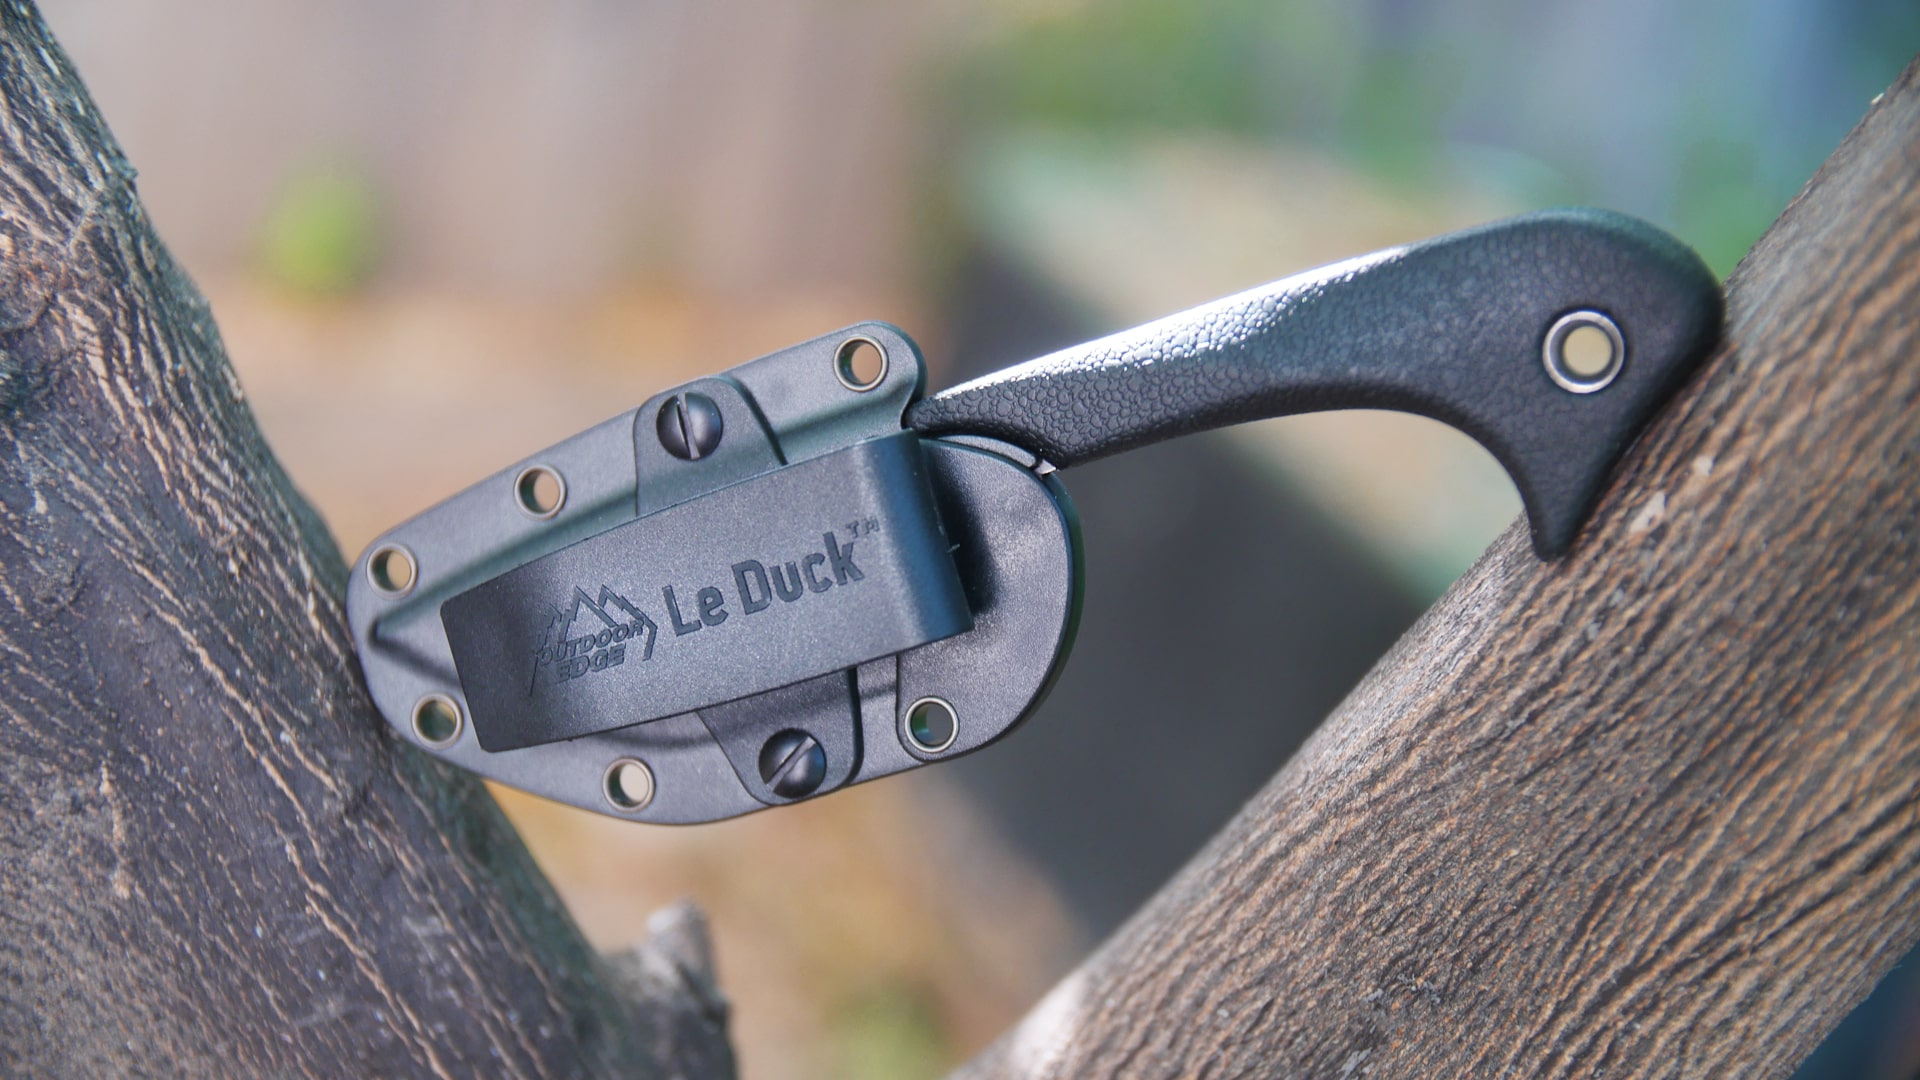 Le Duck Tactical Survival Molle Knife Review